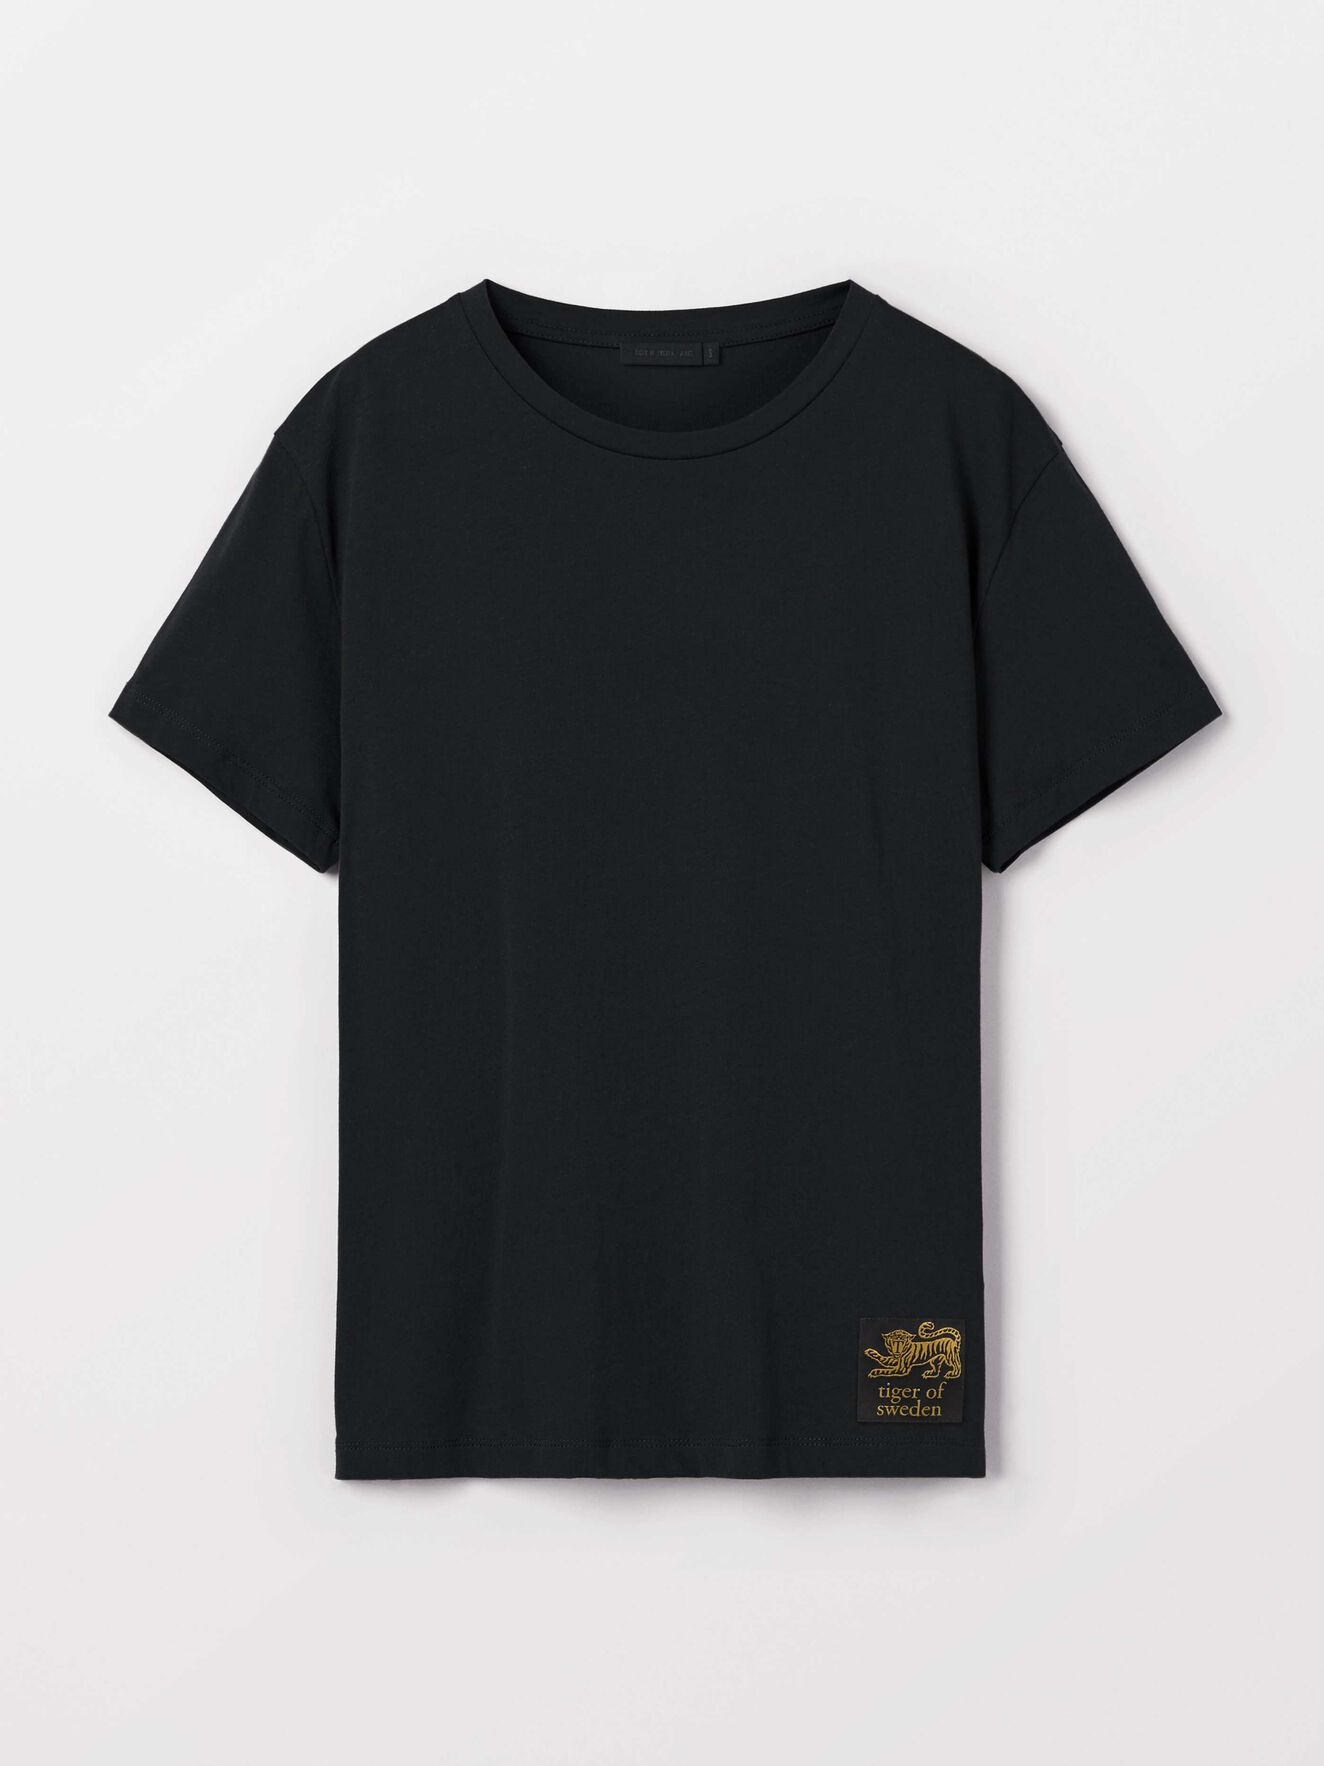 Dawn T-Shirt   in Black from Tiger of Sweden